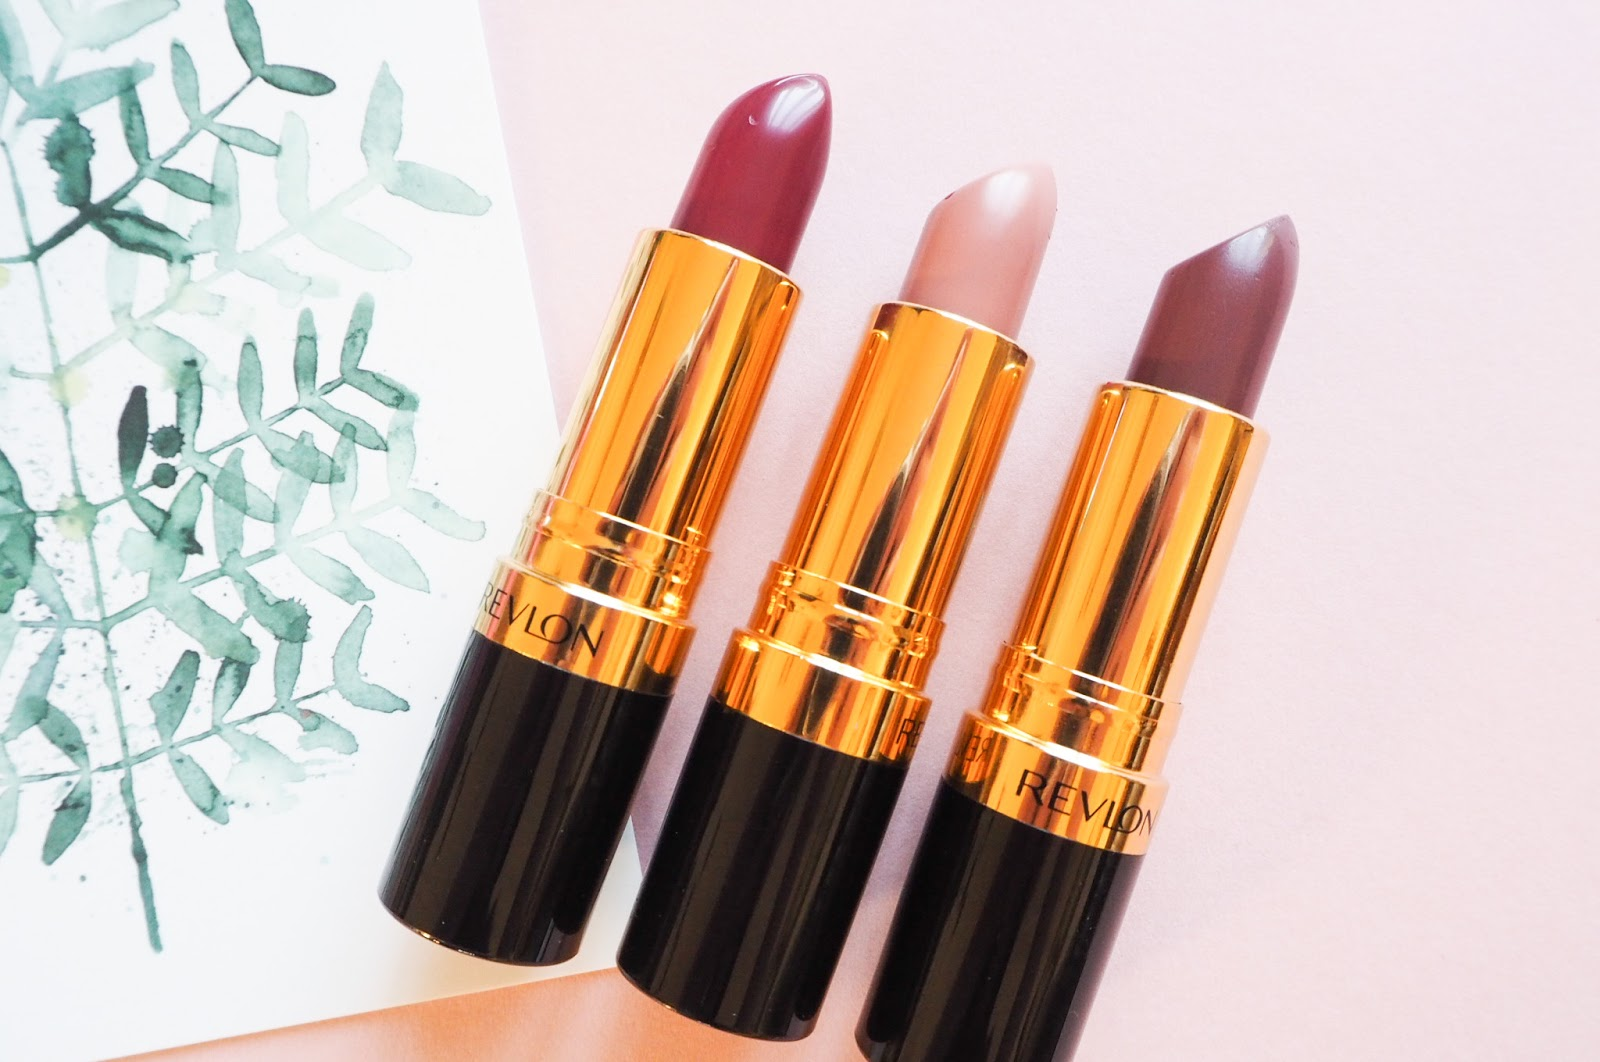 Revlon Super Lustrous Lipsticks in Bombshell Red, Bare Affair and Naughty Plum